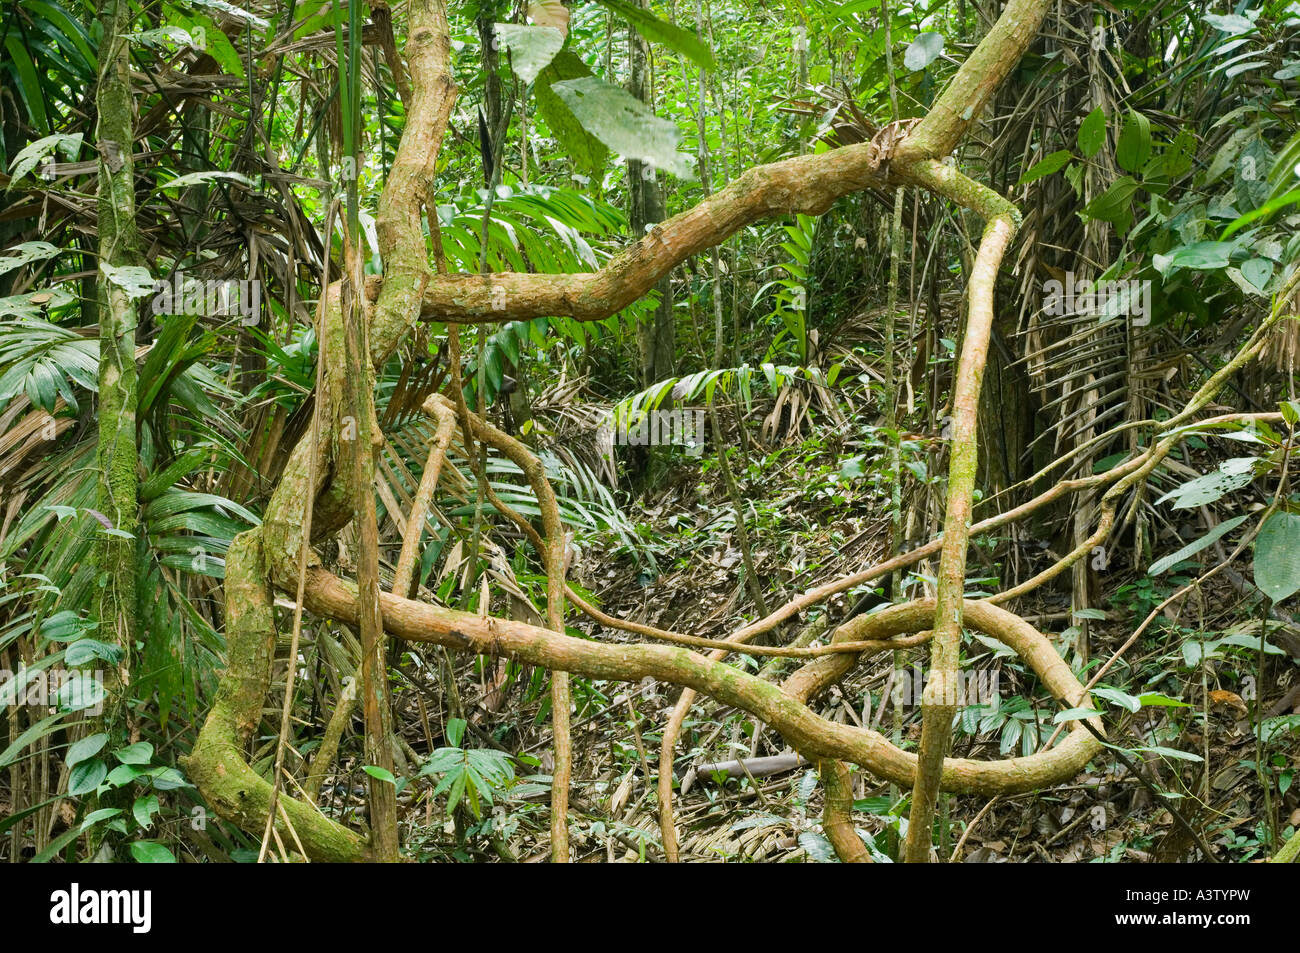 Panama, Darien National Park, Cana area, knotted lianas in rainforest, Darien wilderness - Stock Image